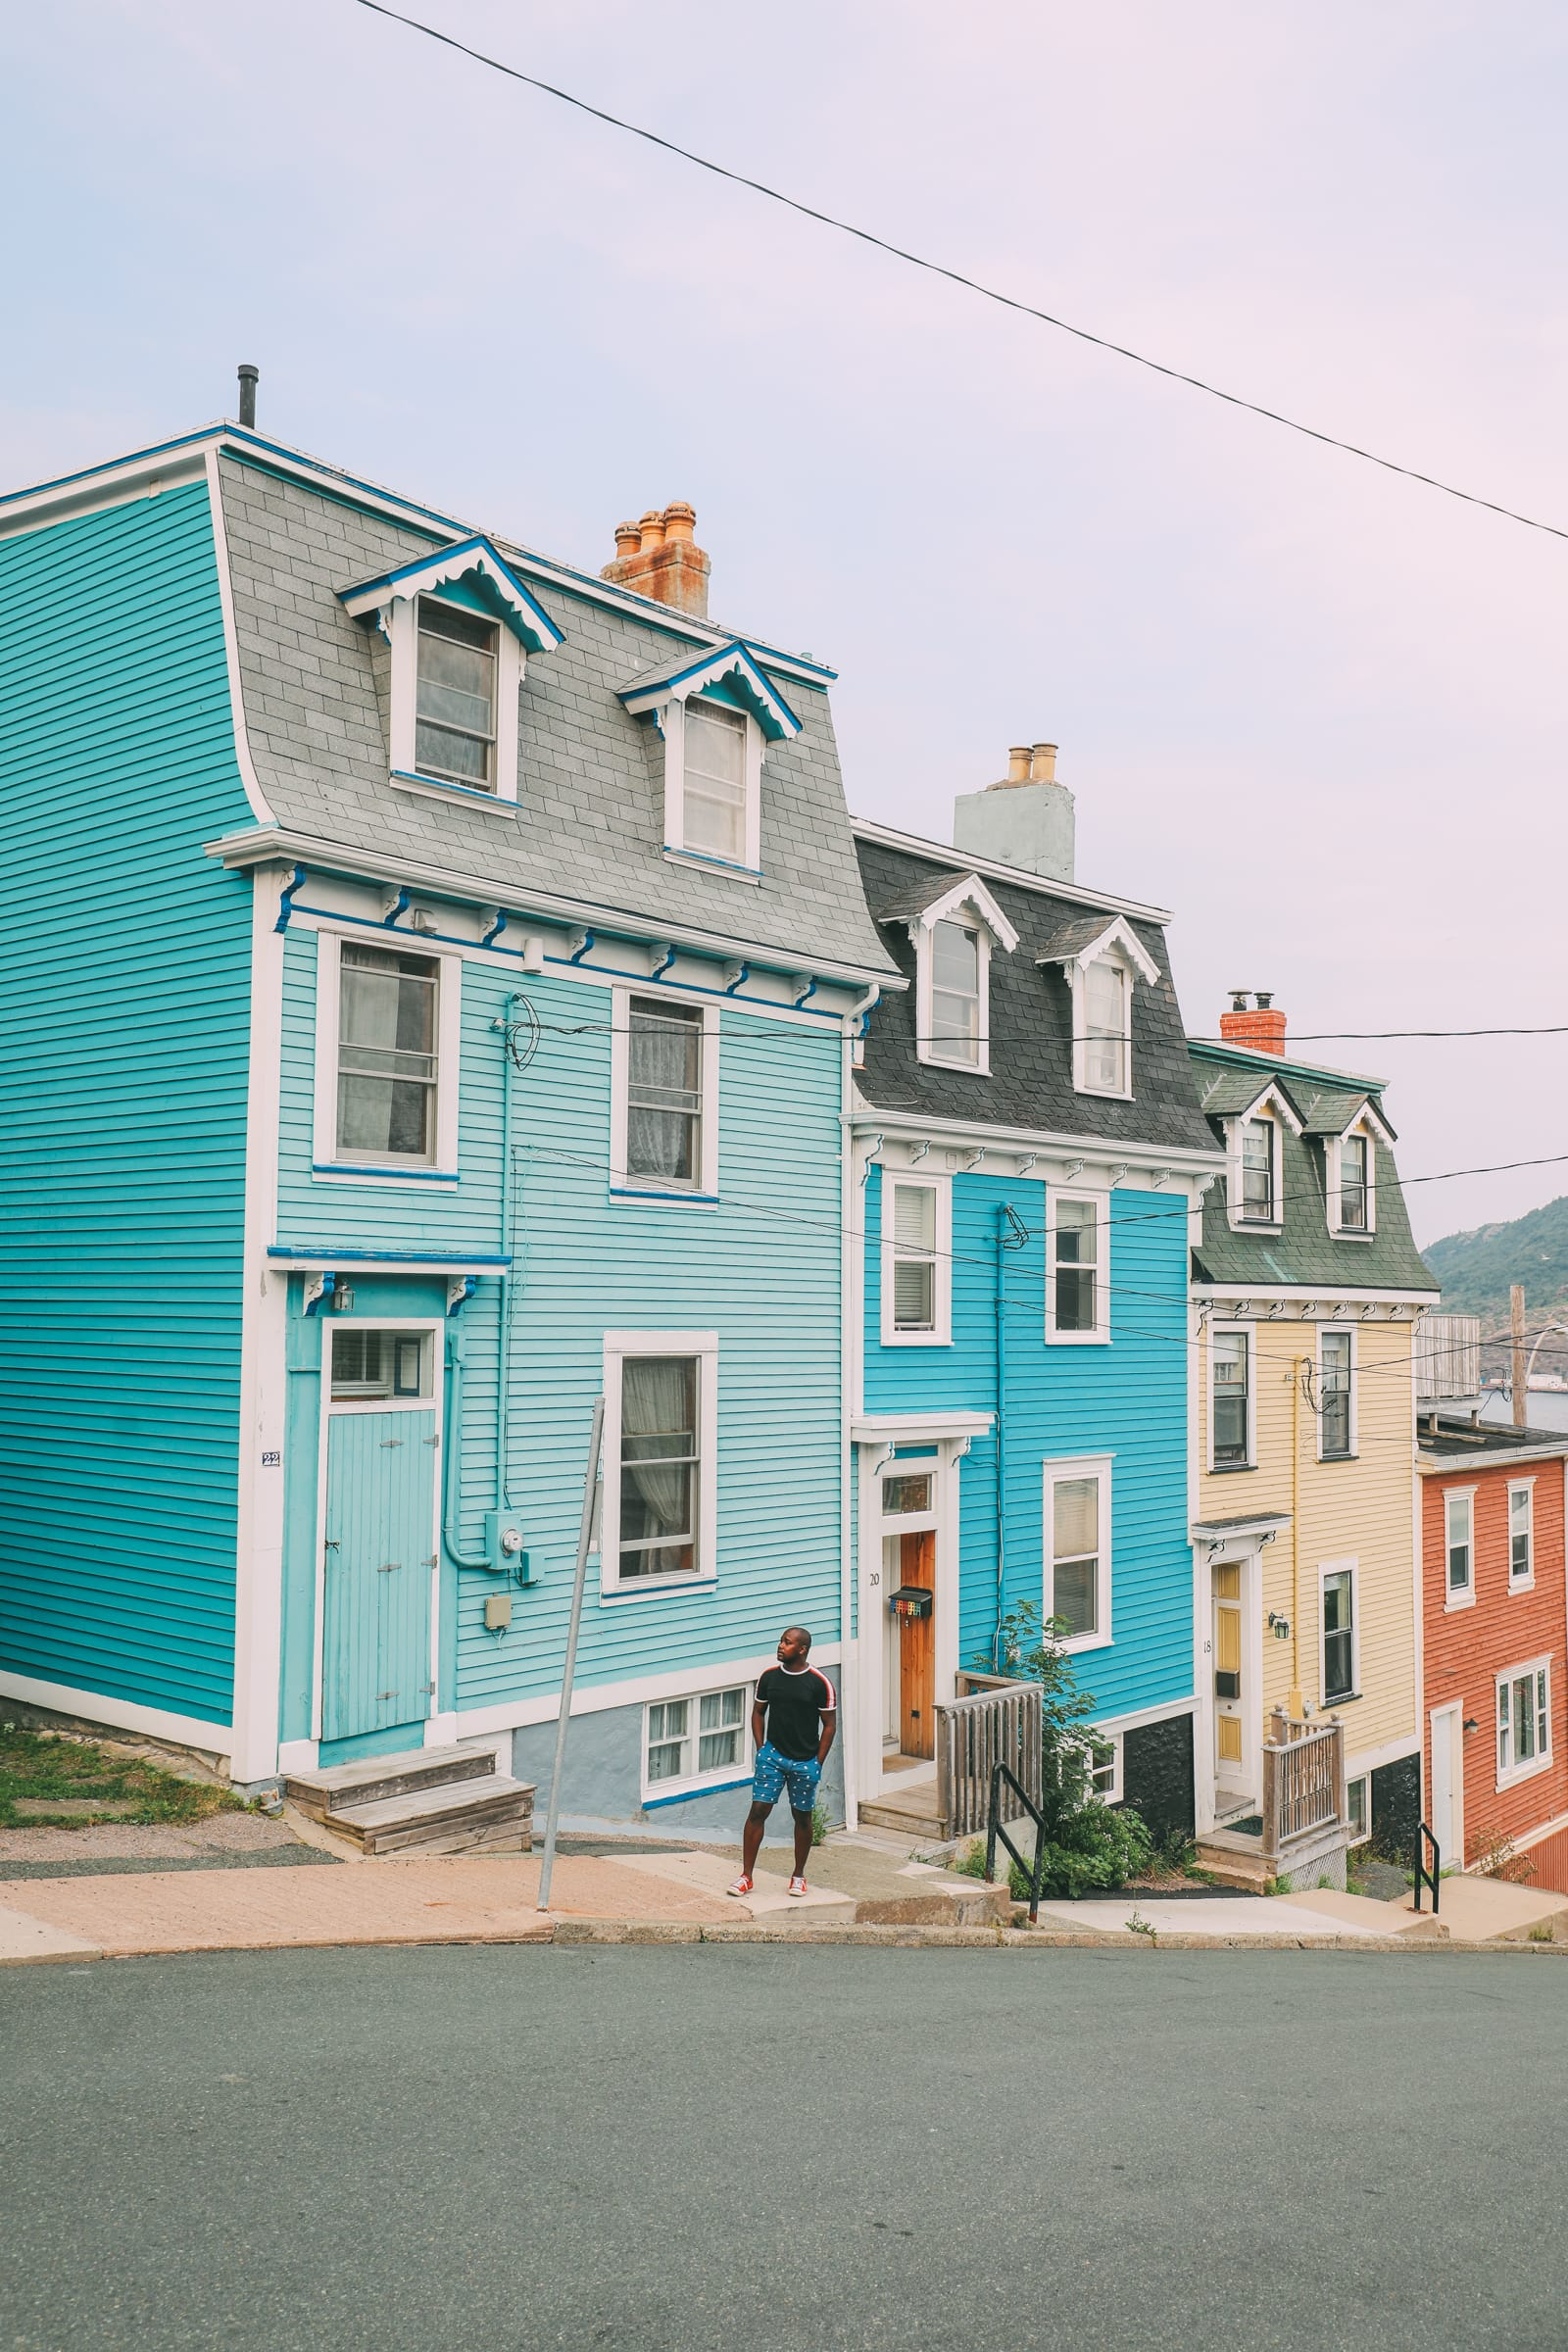 The Colourful Houses Of St John's, Newfoundland (8)